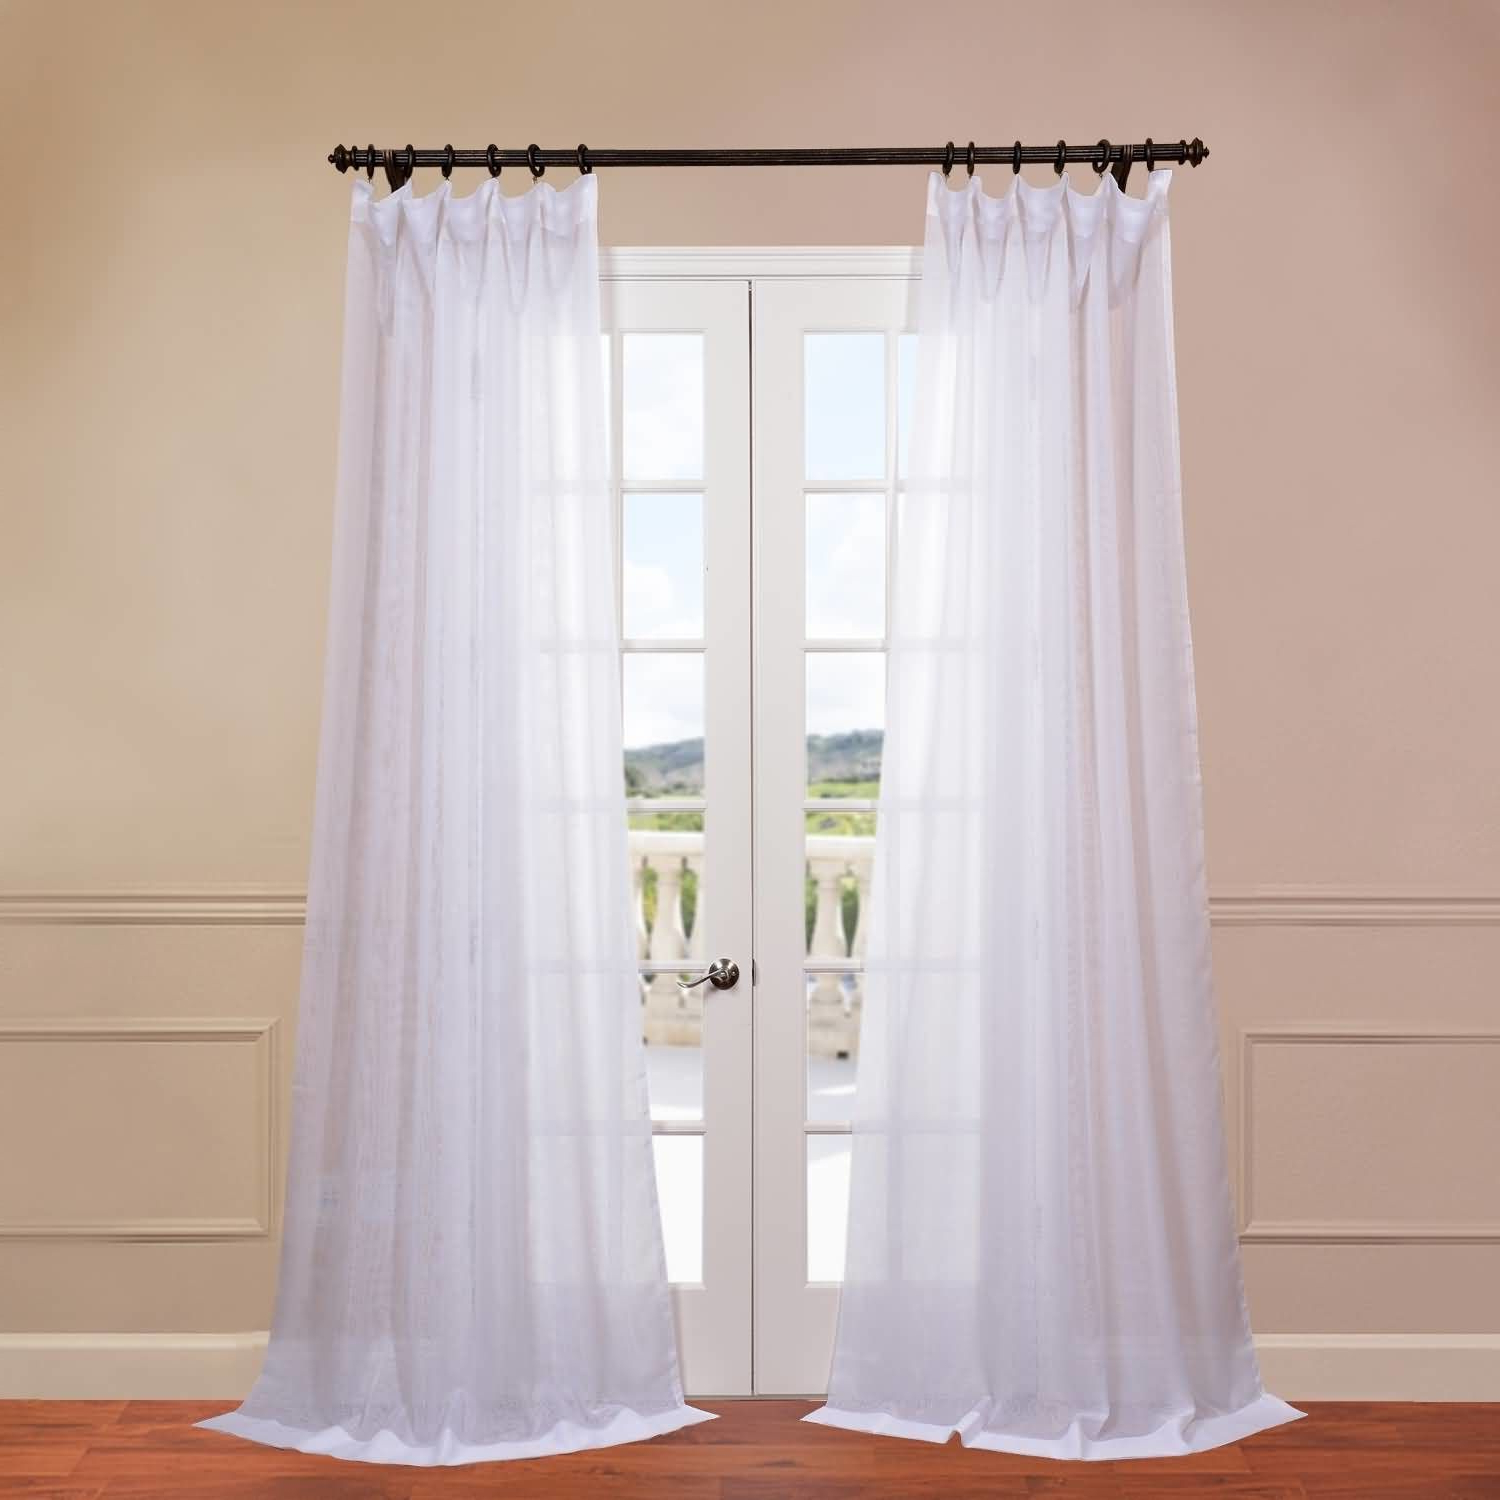 Signature Double Layered Sheer Single Curtain Panel With Regard To Fashionable Signature White Double Layer Sheer Curtain Panels (View 2 of 20)